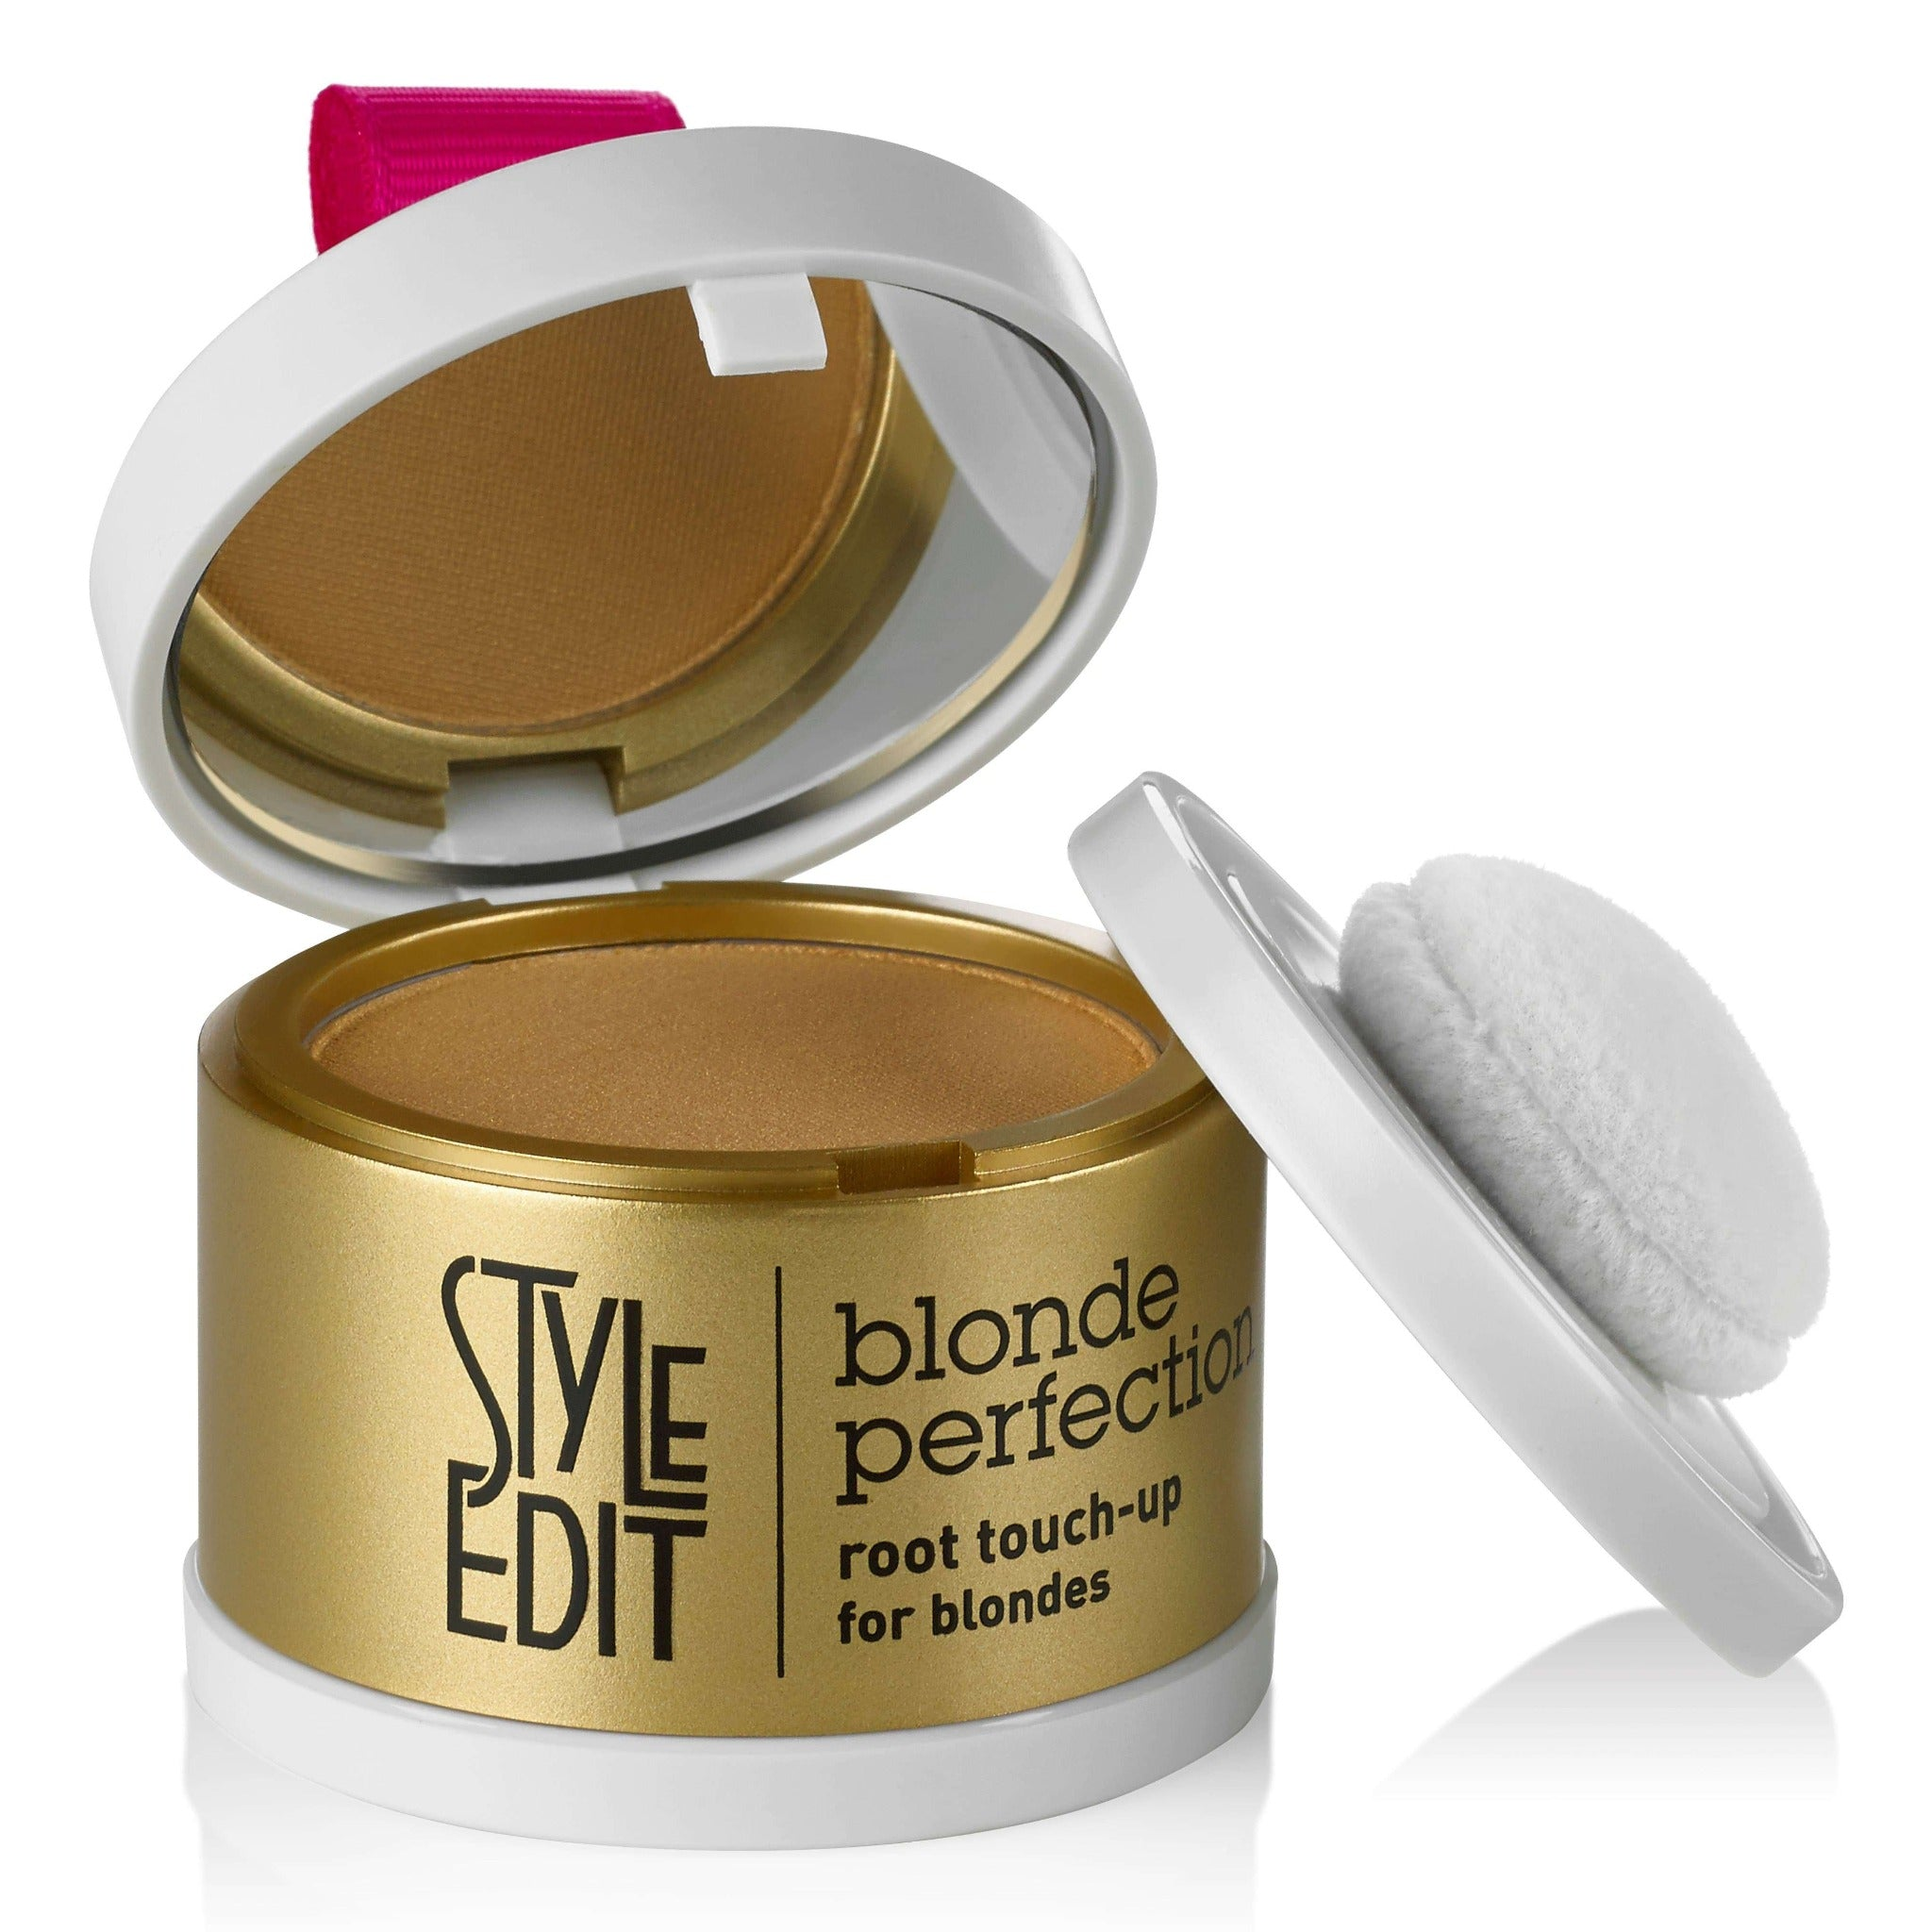 Style Edit Blond Perfection Root Touch-Up Powder - Style Edit data-zoom=